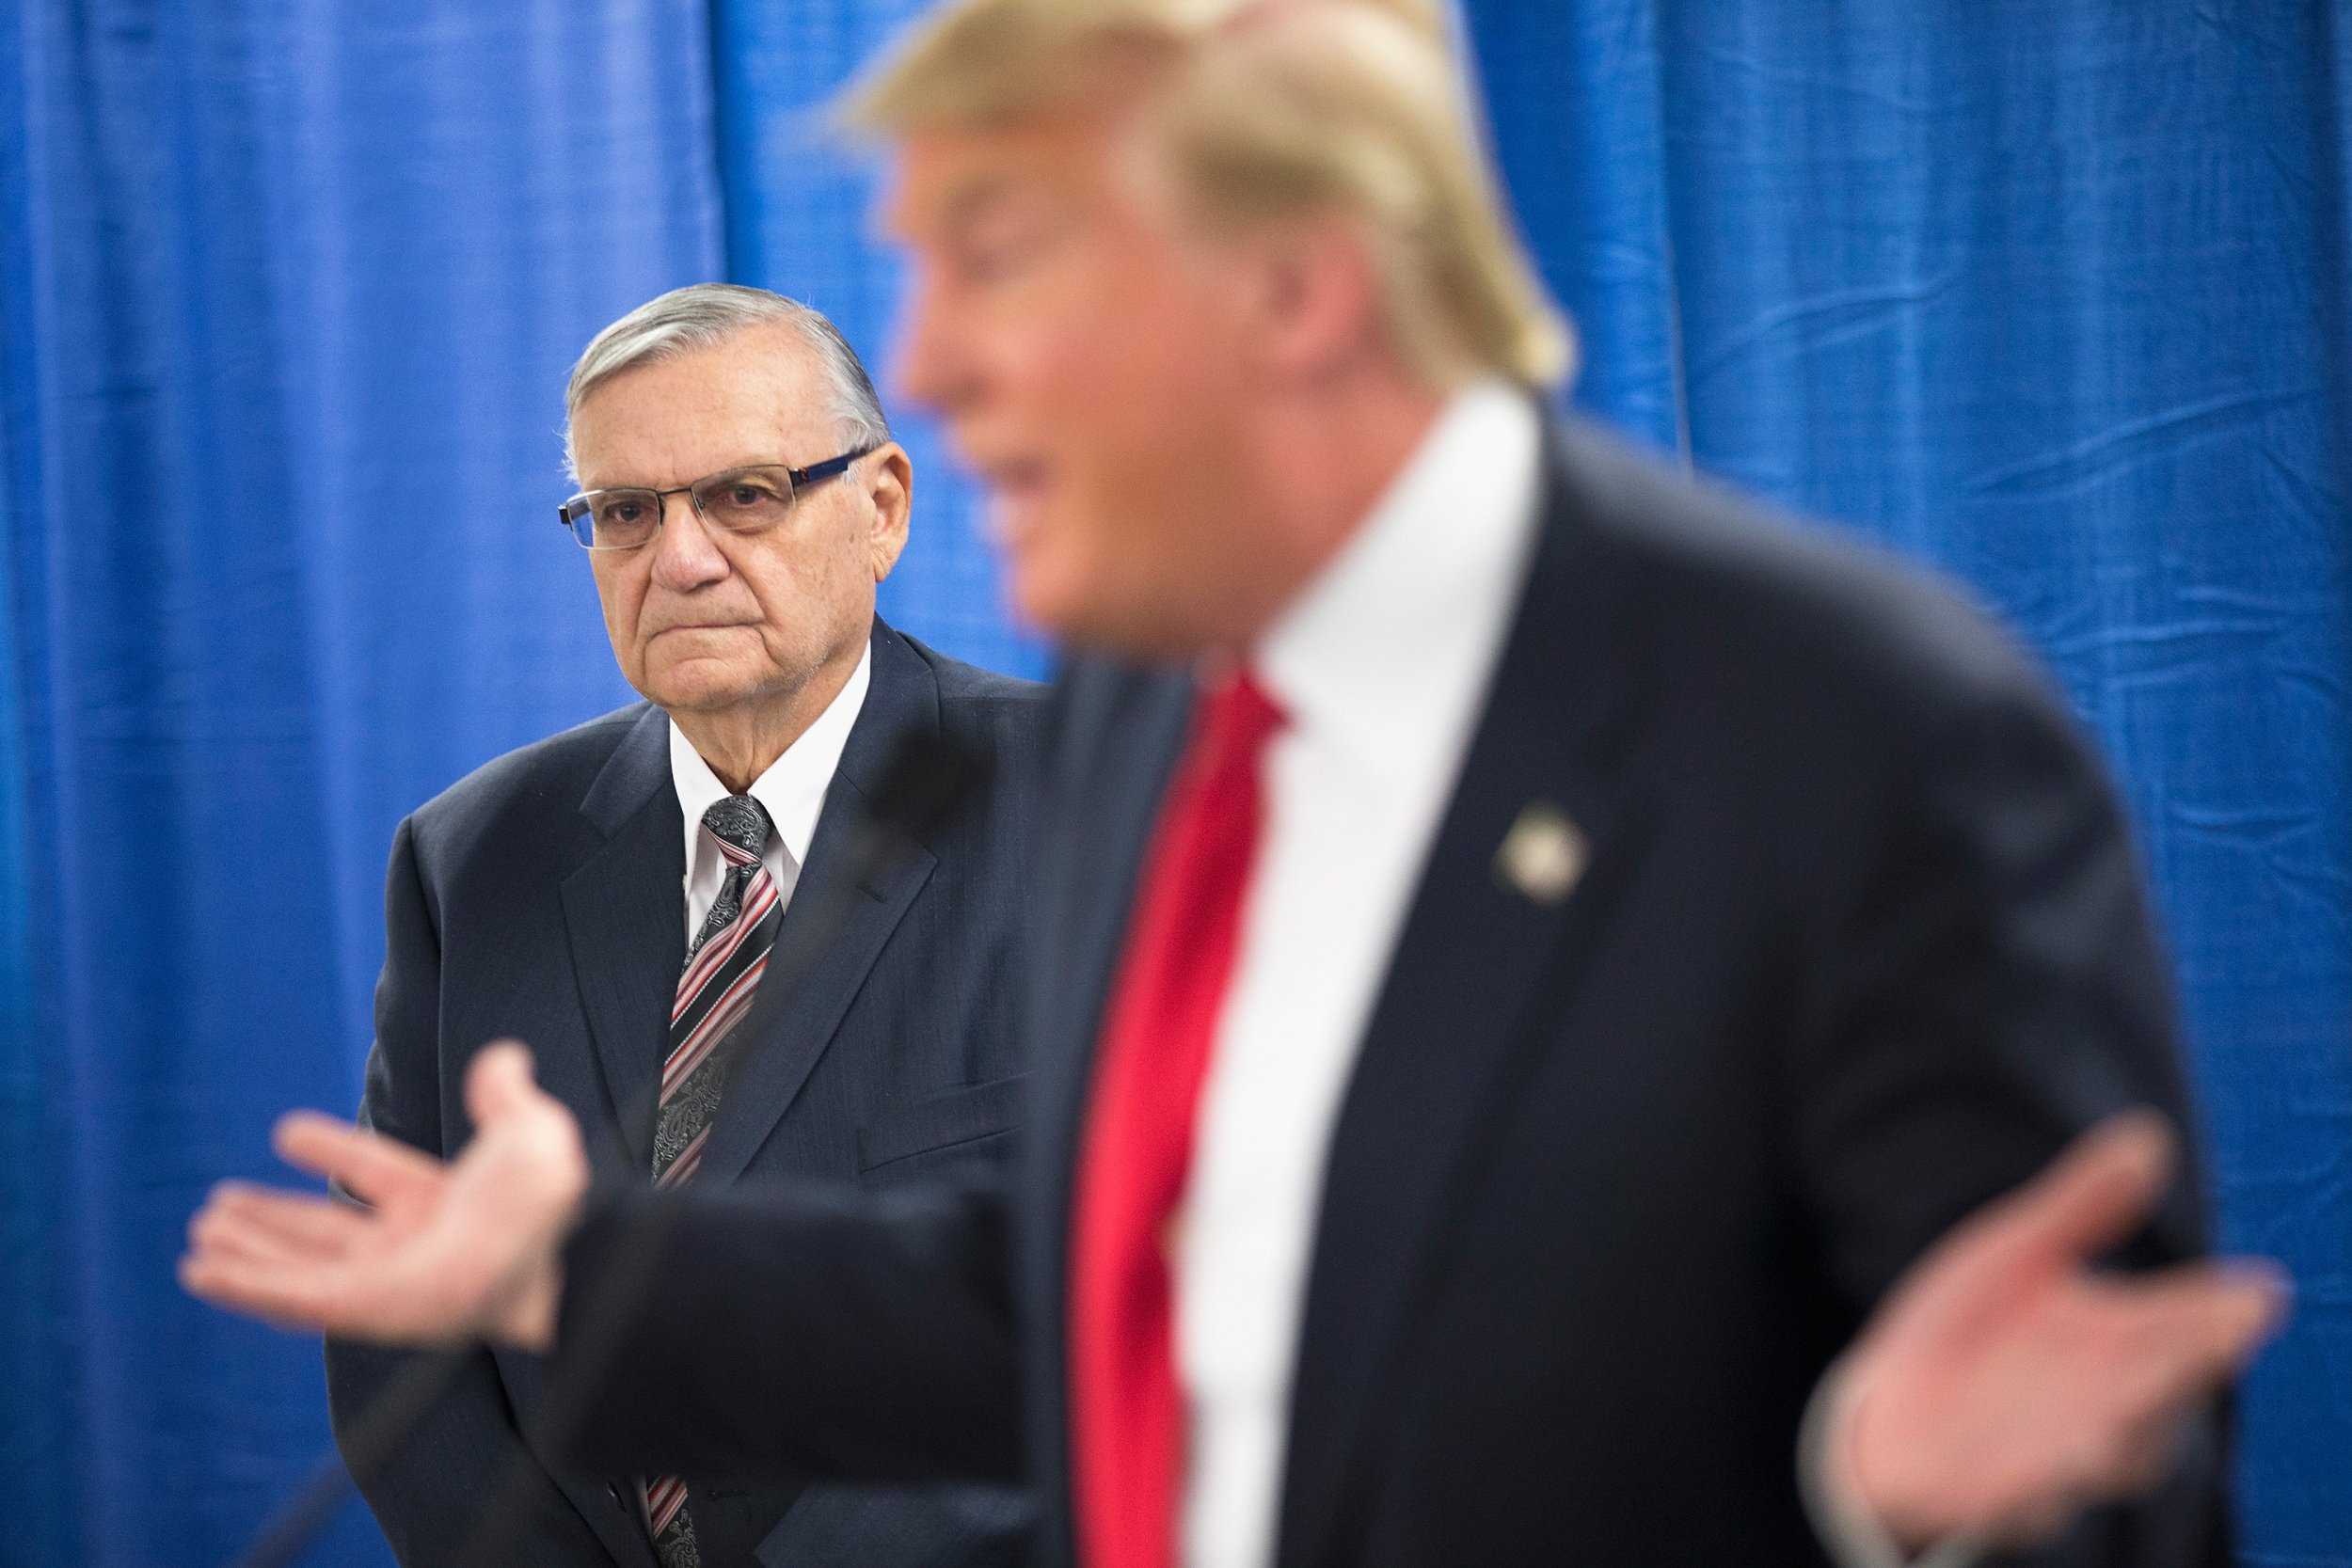 Joe arpaio claims he proved obama birth certificate is fake joe arpaio claims he proved obama birth certificate is fake and will resume debunked birther movement if elected 1betcityfo Gallery